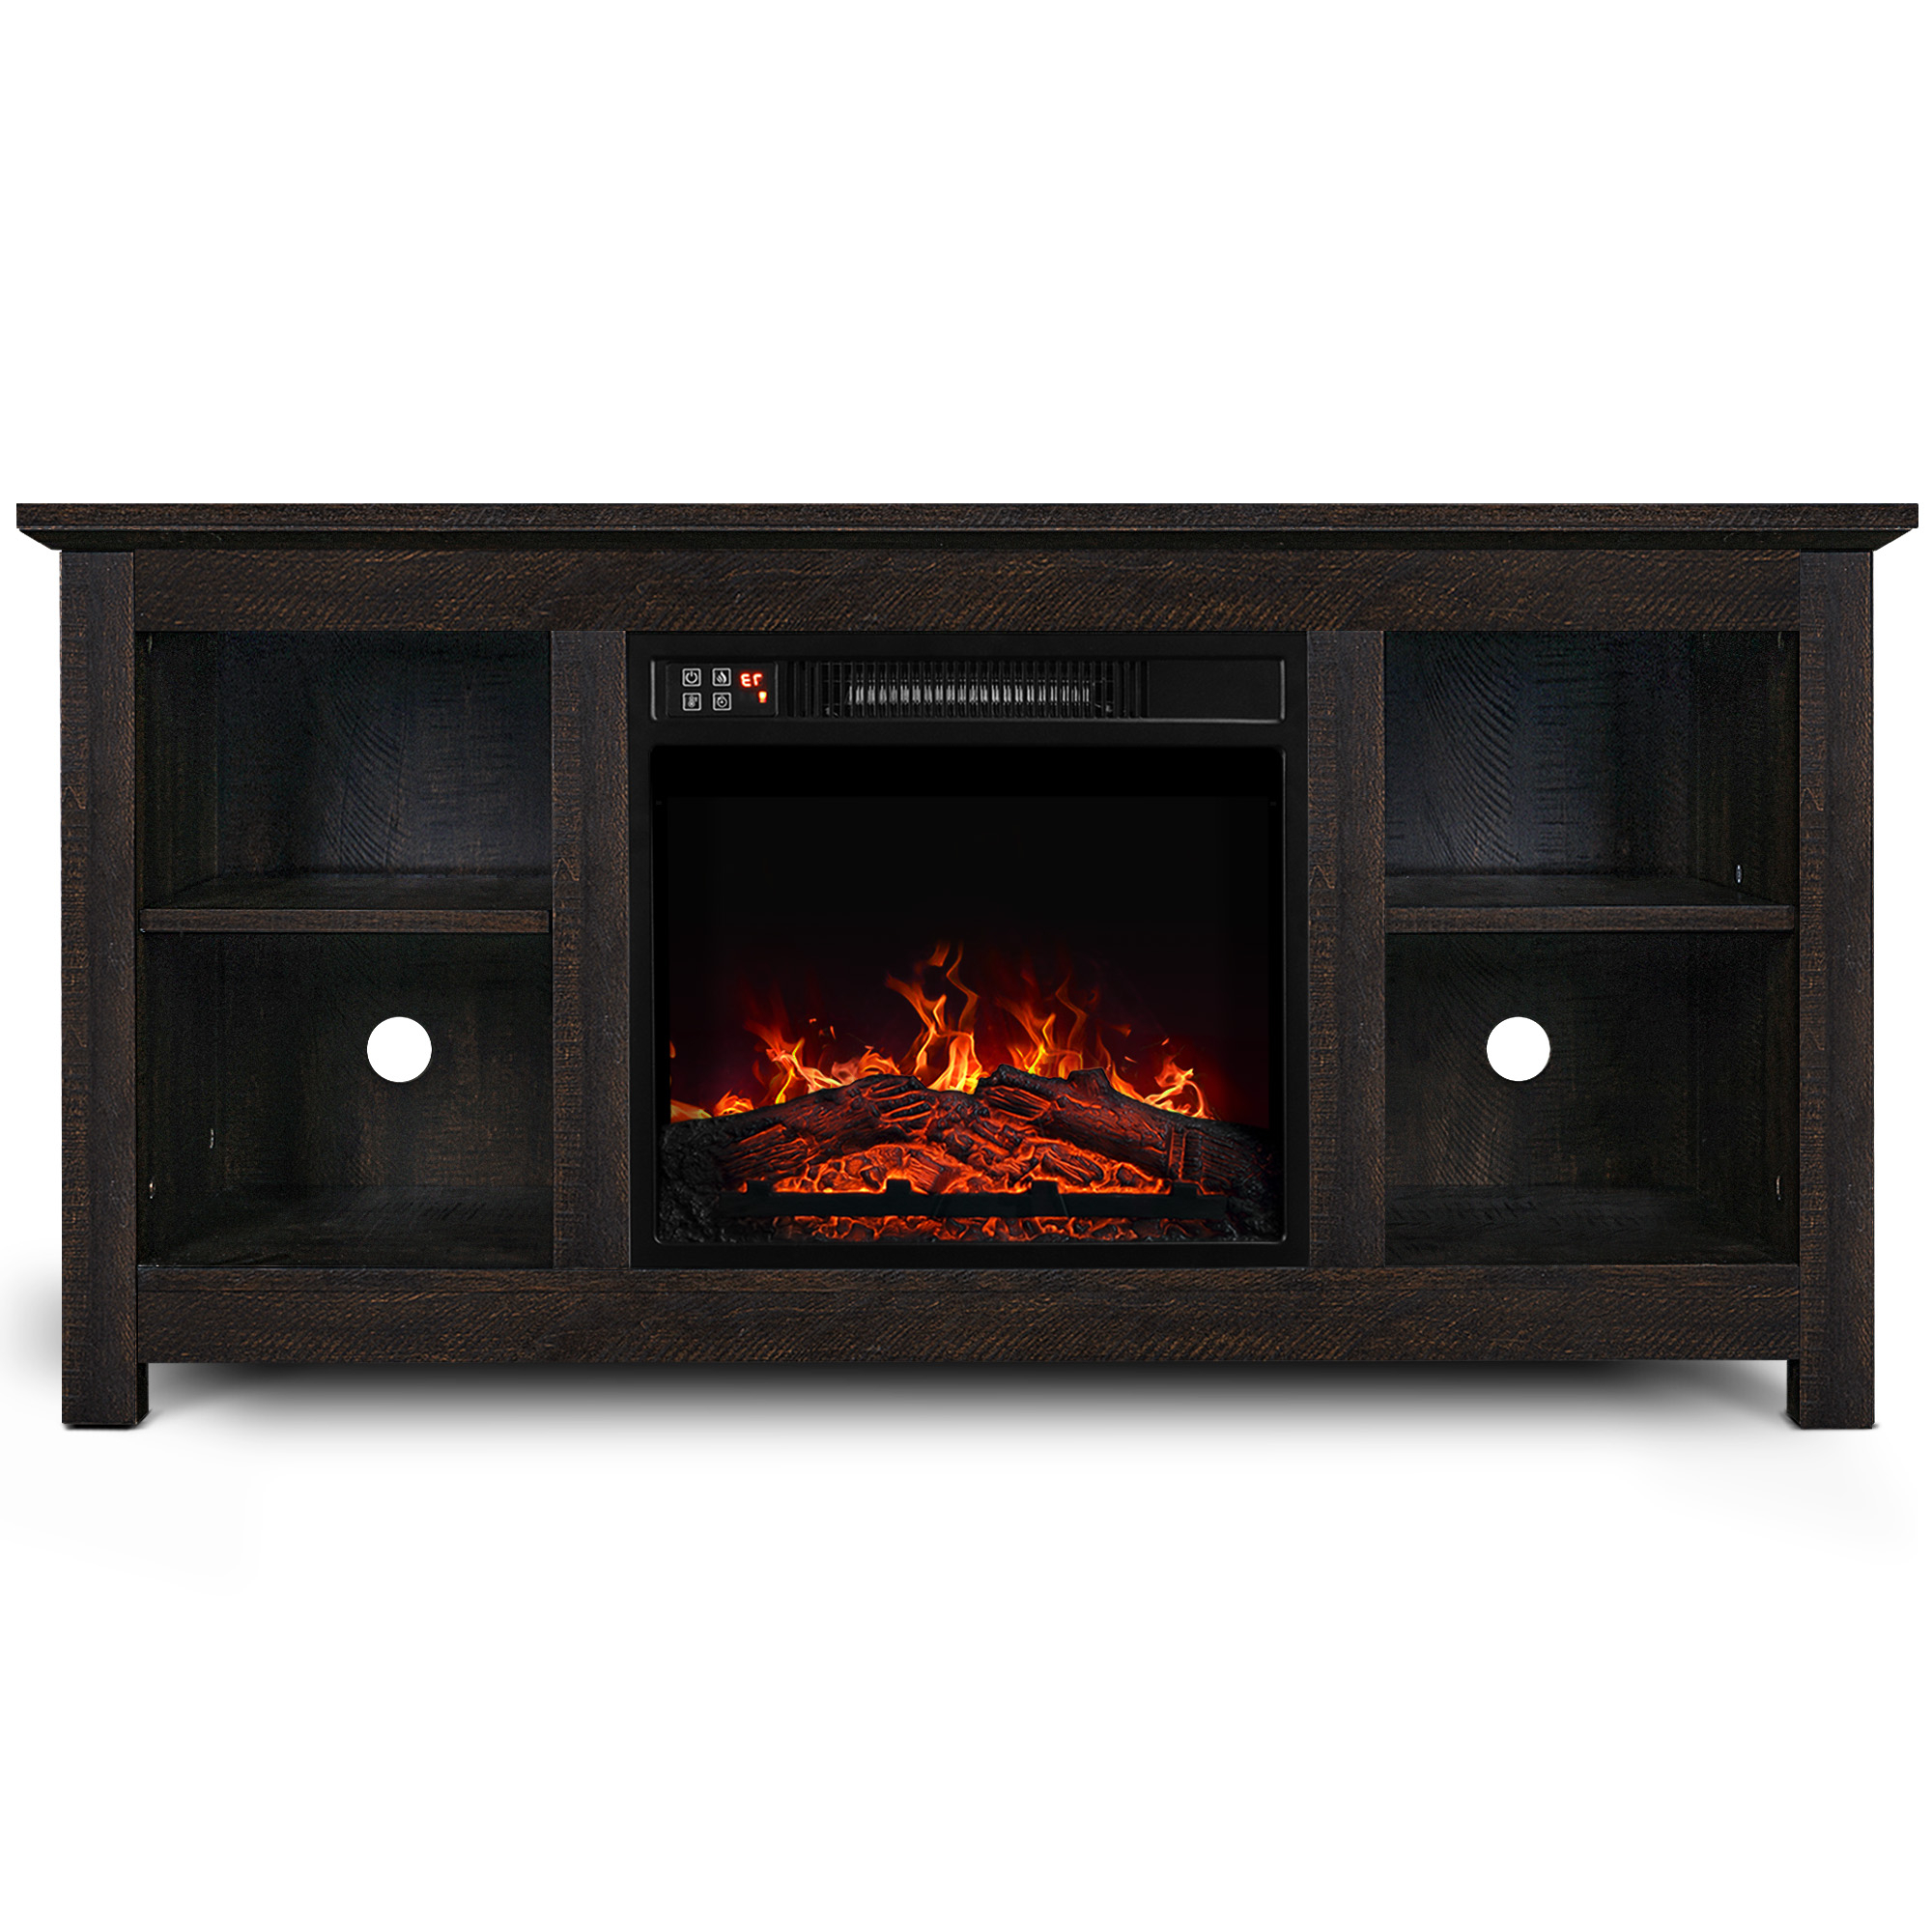 """Mclelland Tv Stands For Tvs Up To 50"""" With Regard To Fashionable 50 Inch Wide Television Stand Console For Tv's Up To  (View 15 of 25)"""